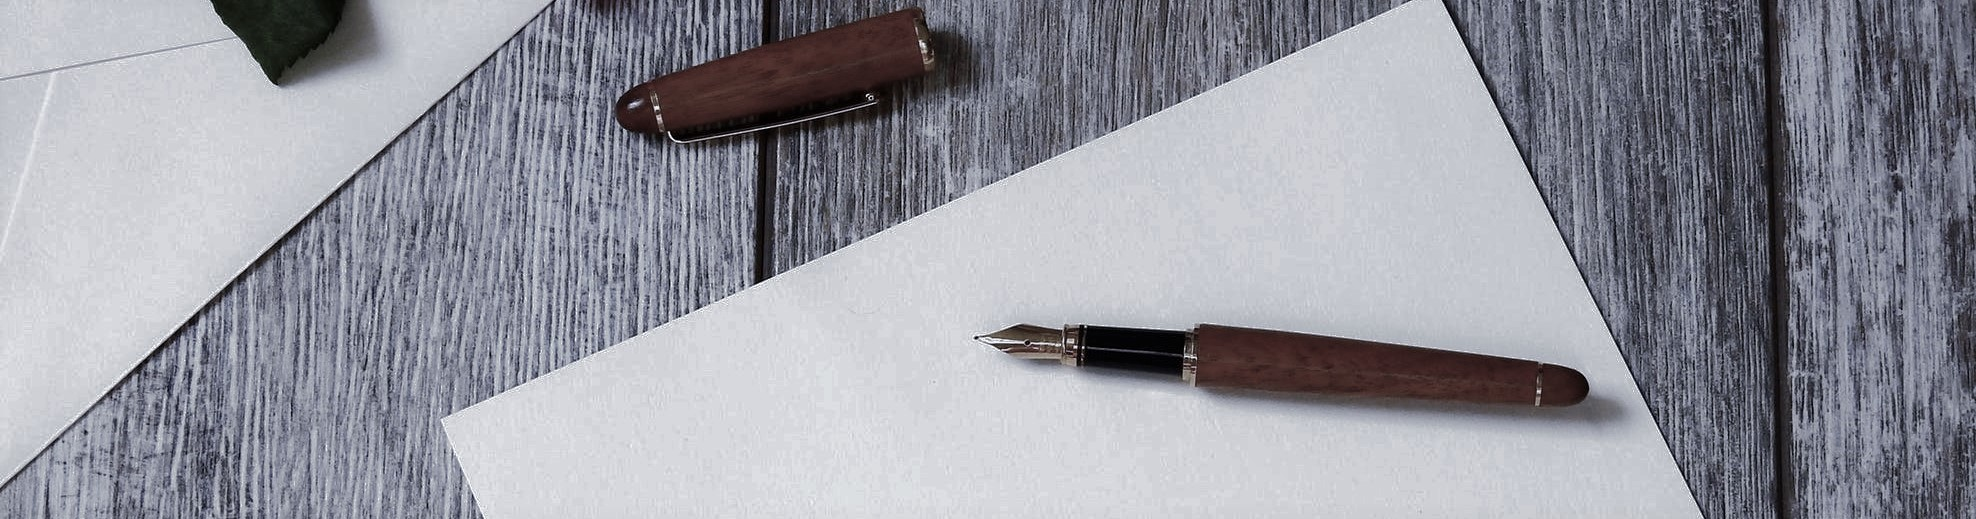 Signatory-pen-and-paper2